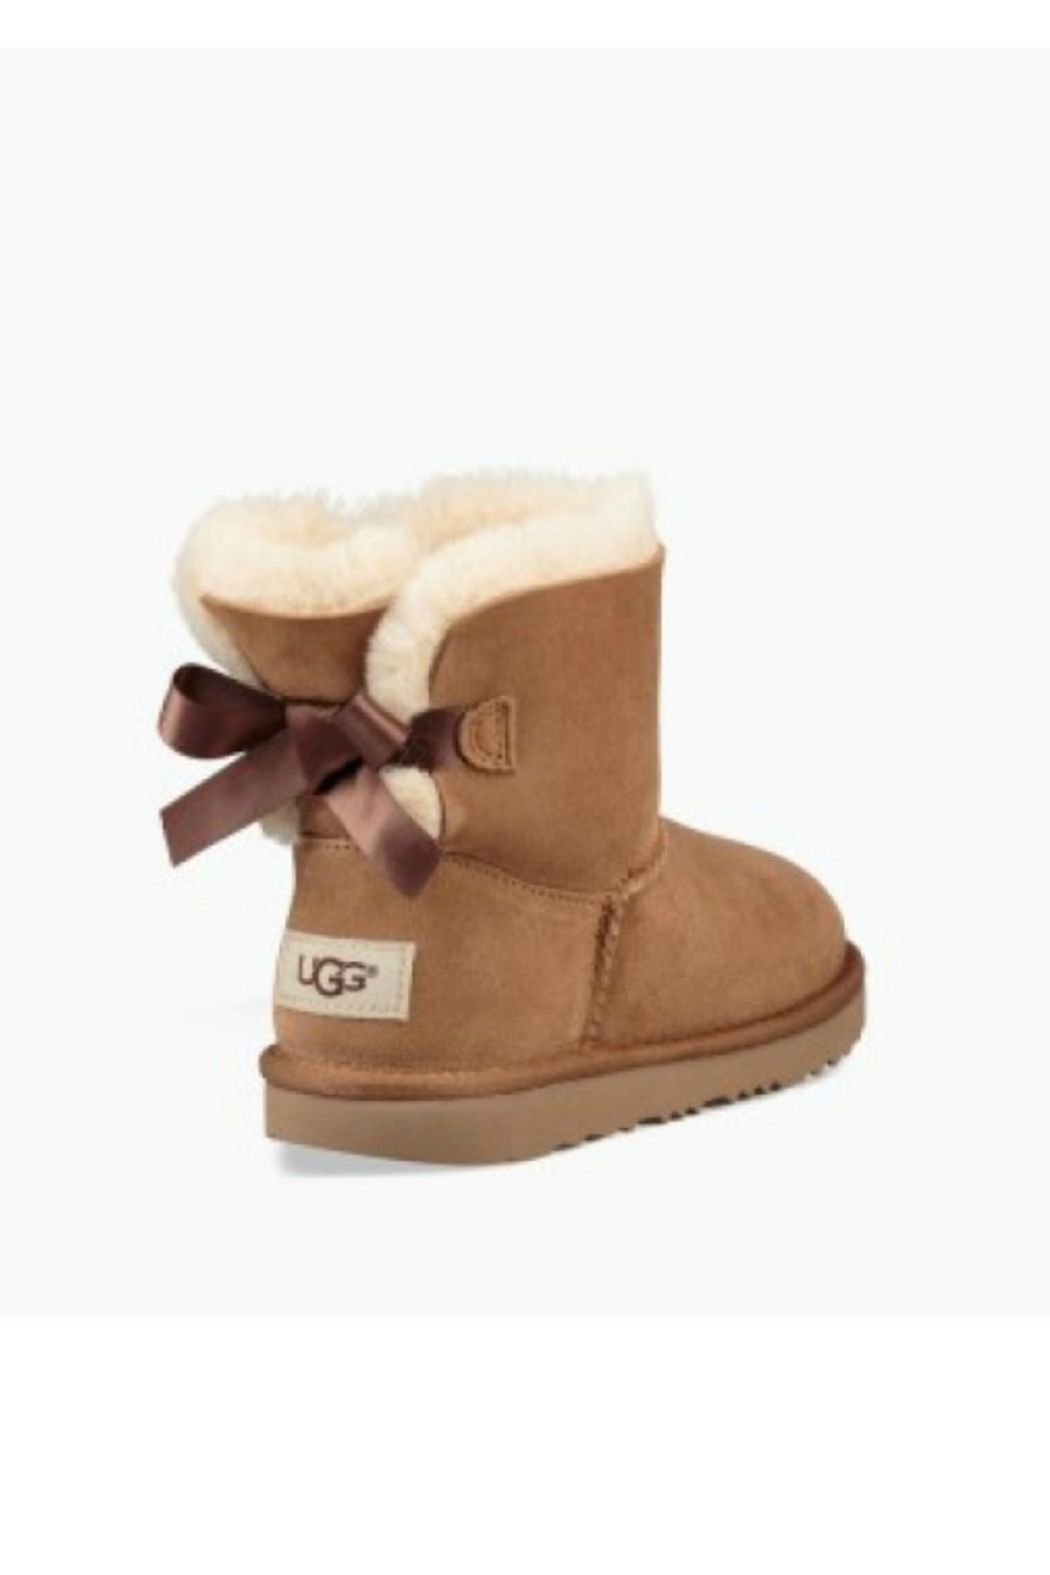 296f78cf7db Ugg KIDS MINI BAILEY BOW II from New Jersey by Suburban Shoes ...